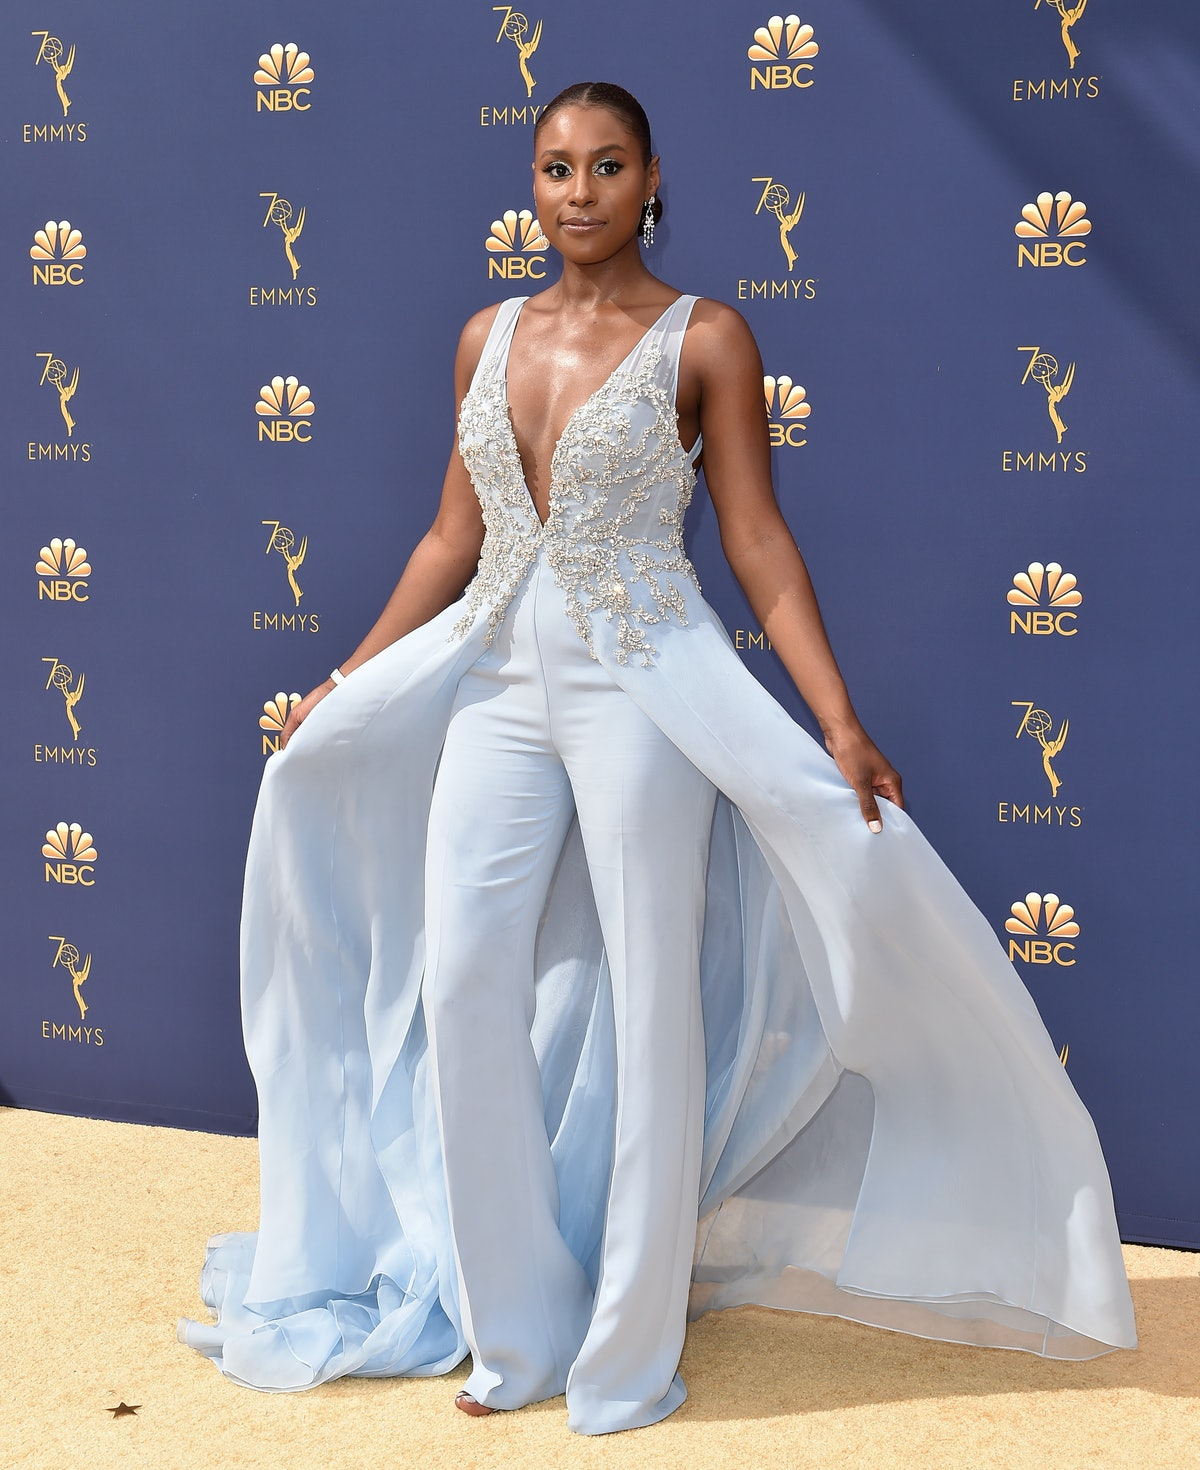 LOS ANGELES, CA - SEPTEMBER 17:  Issa Rae attends the 70th Emmy Awards at Microsoft Theater on Septe...